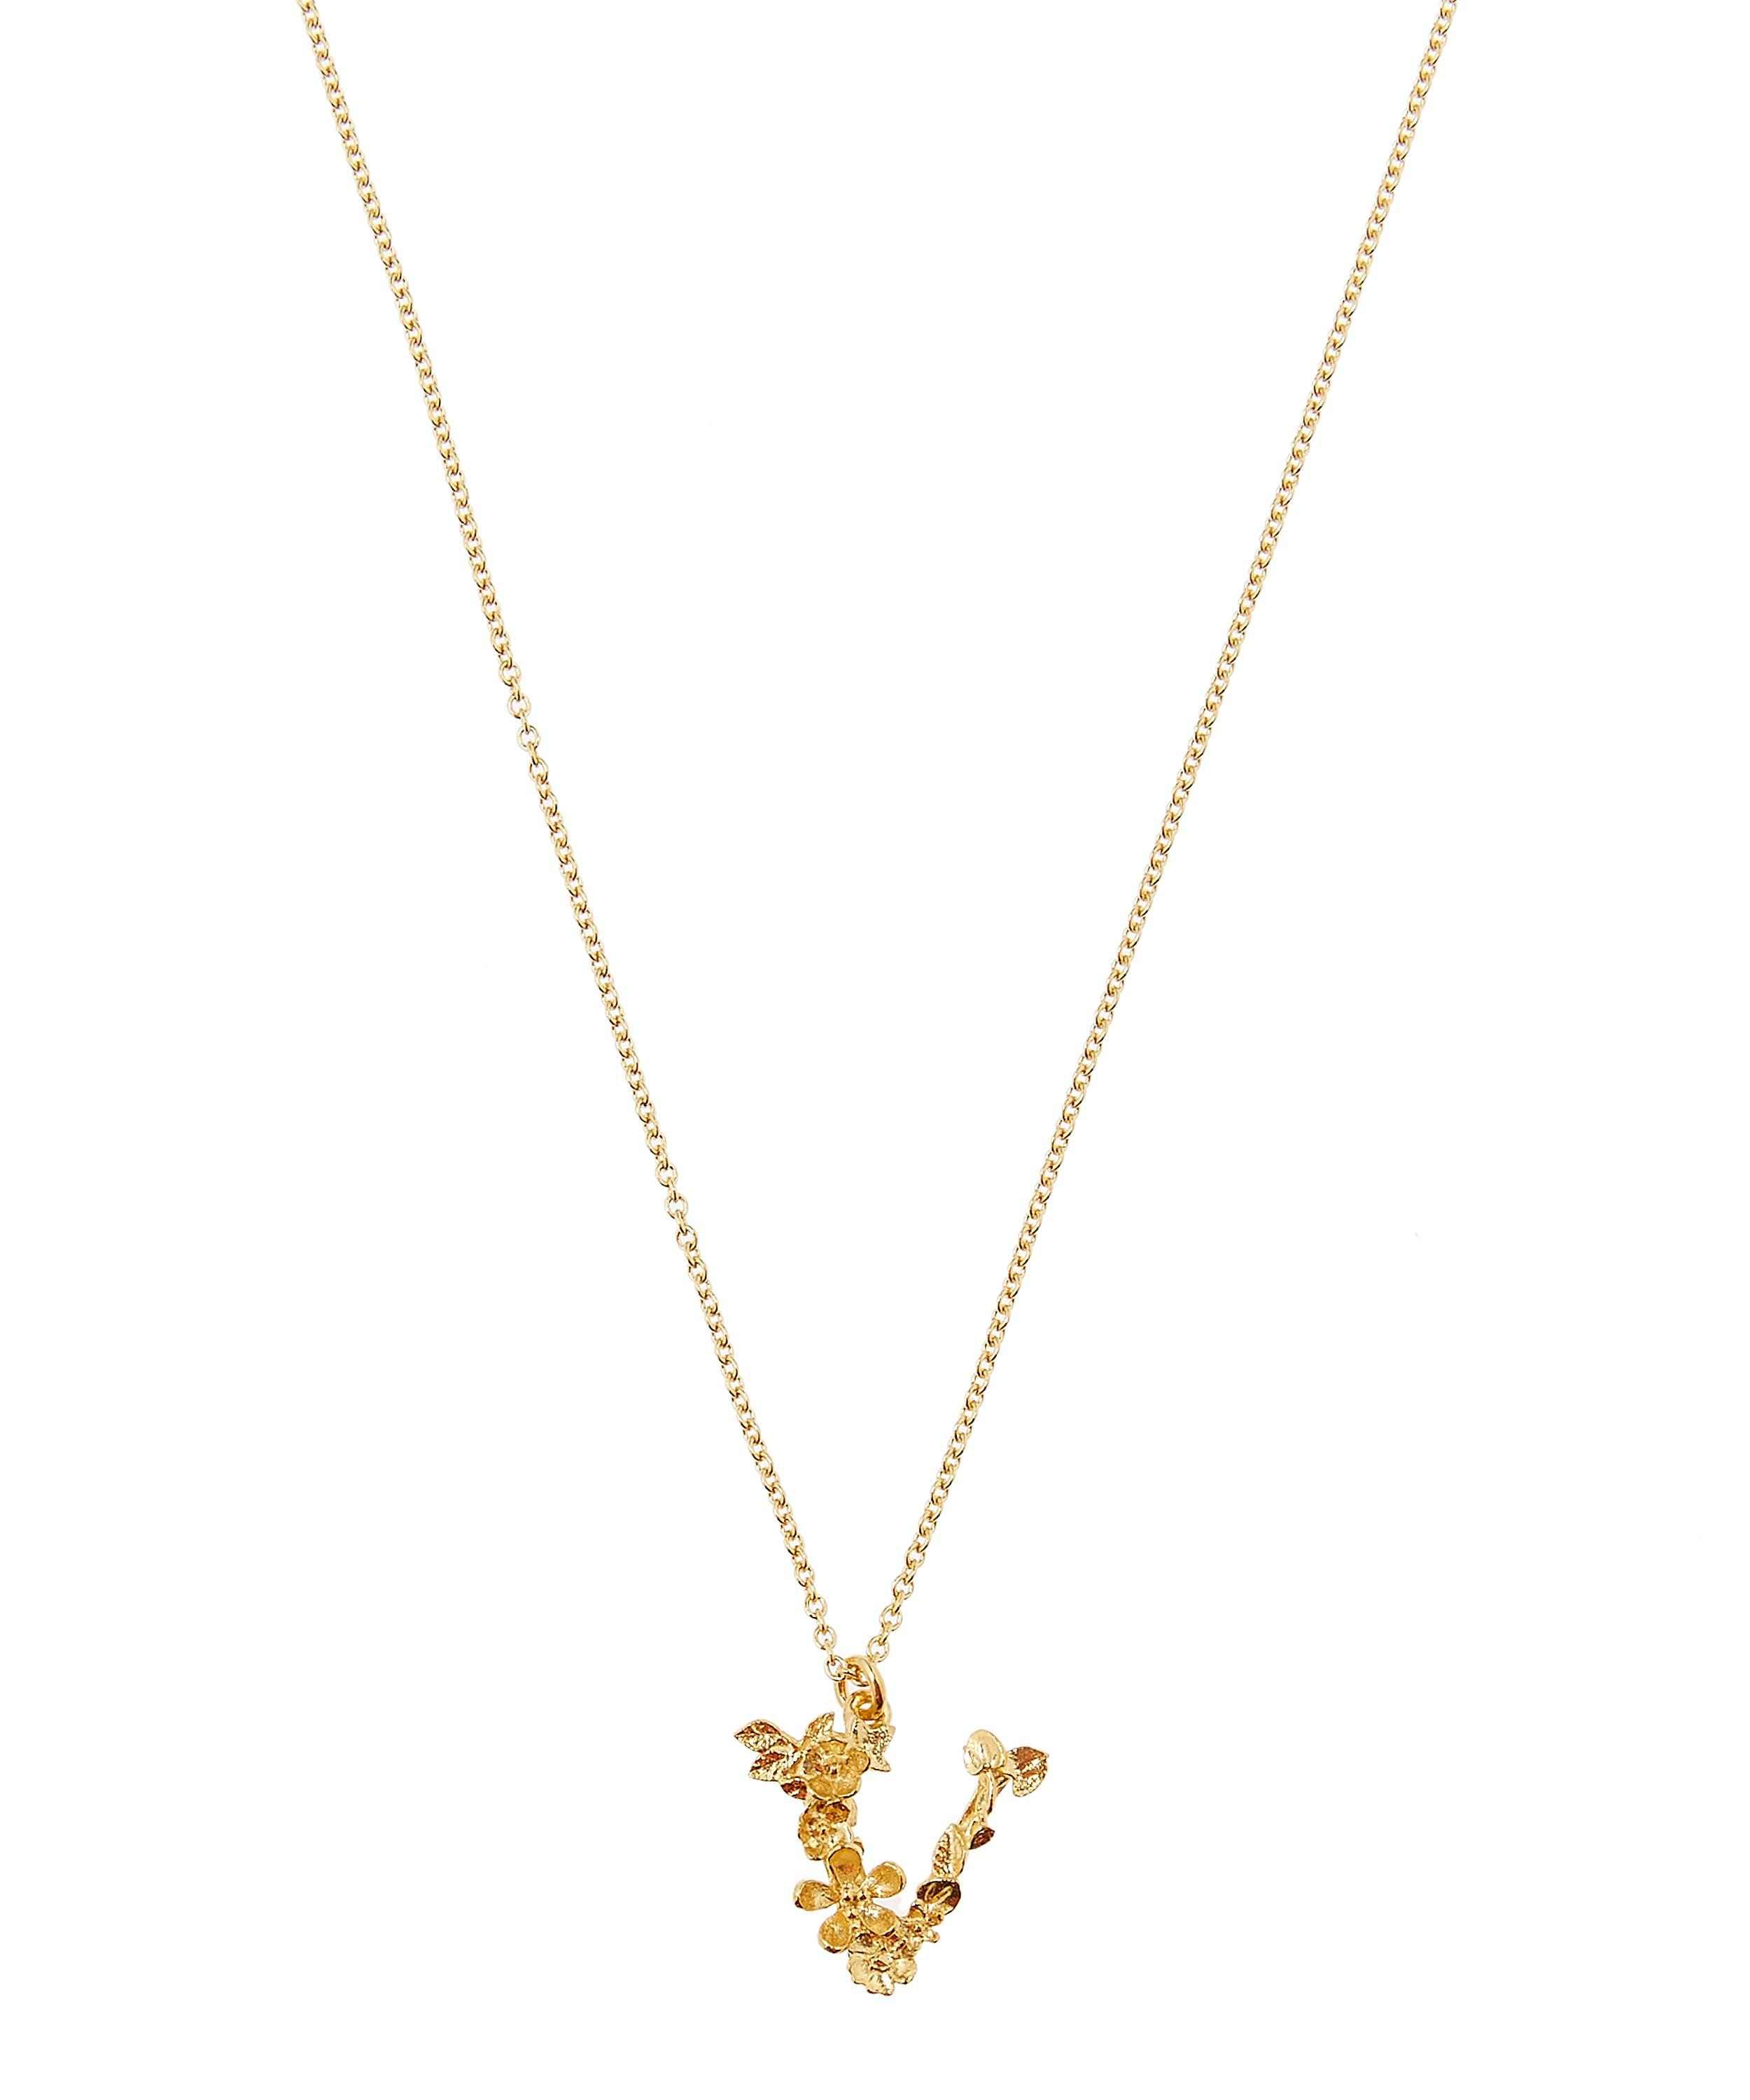 Women's Metallic Gold Plated Floral Letter V Alphabet Necklace Intended For 2020 Letter V Alphabet Locket Element Necklaces (View 4 of 25)